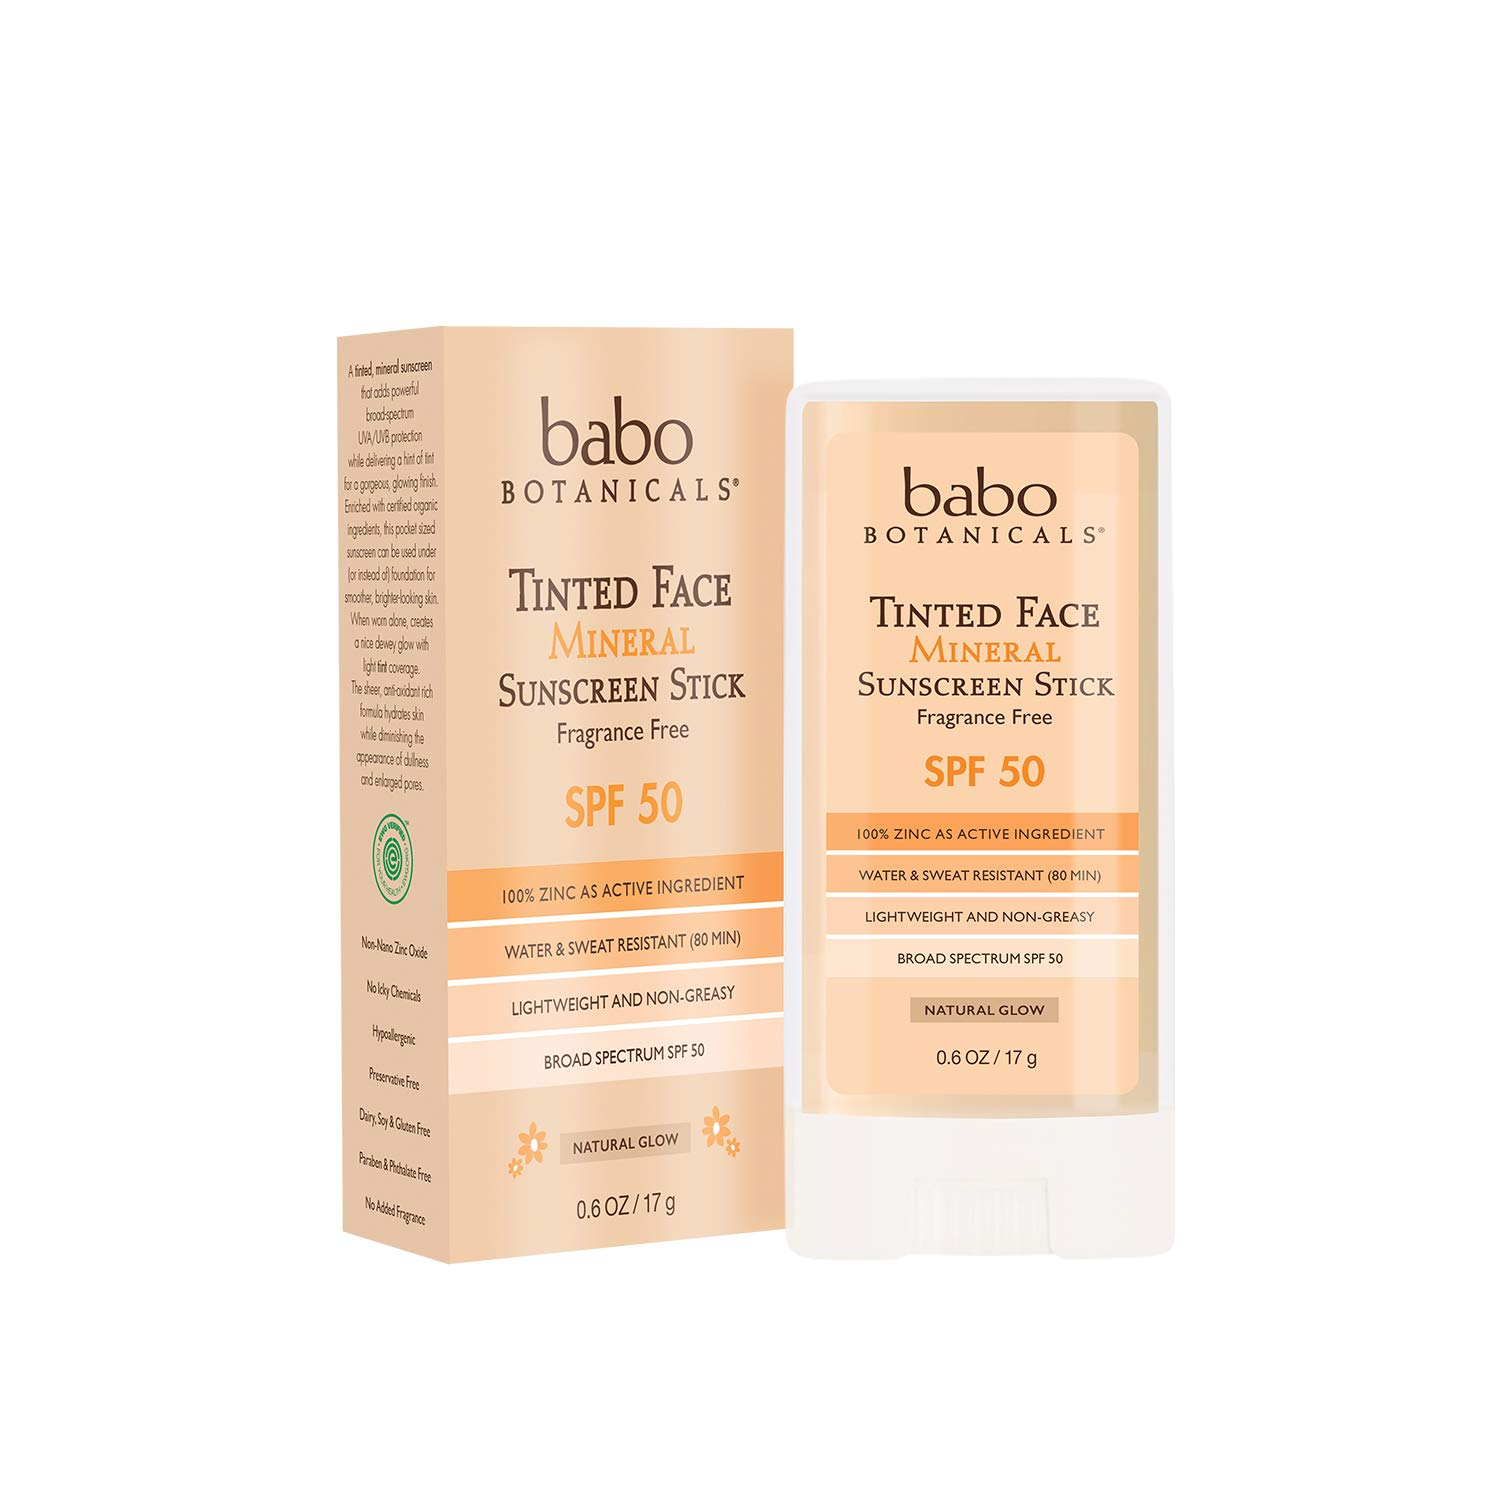 Babo Botanicals Tinted Moisturizing Face Mineral Stick Sunscreen SPF 50 with 70+% Organic Ingredients, Water-Resistant, Fragrance-Free - 0.6 oz.